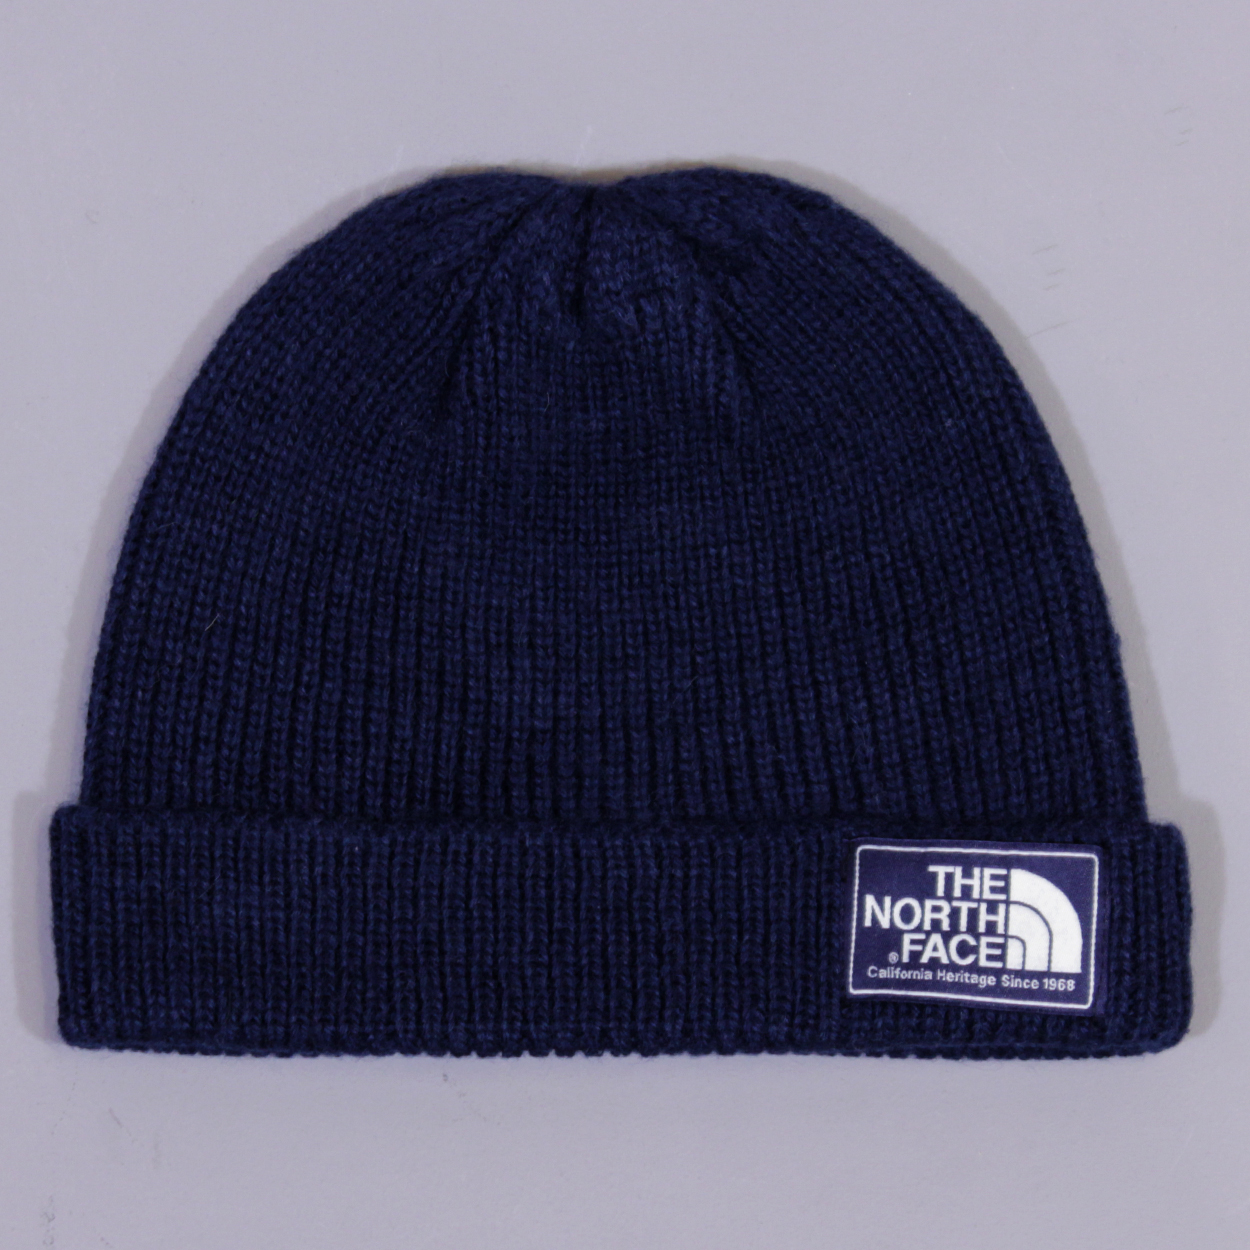 f6951ea80 The North Face California Heritage Shipyard Beanie Winter Hat Cos £10.00